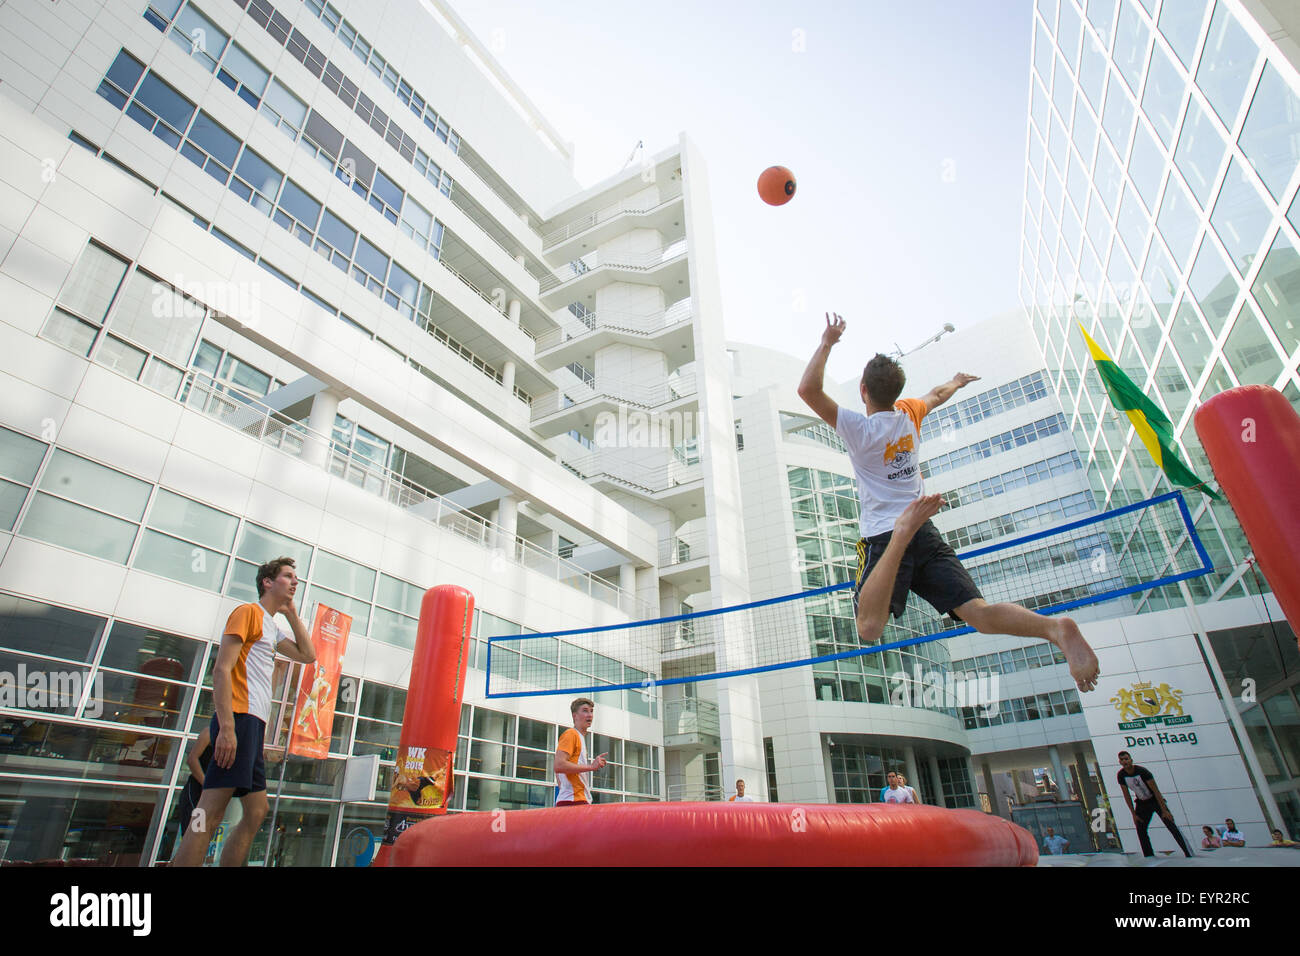 THE HAGUE - Bossaball, a combination of volleyball, football, gymnastics and capoeira is being played by the Dutch Stock Photo